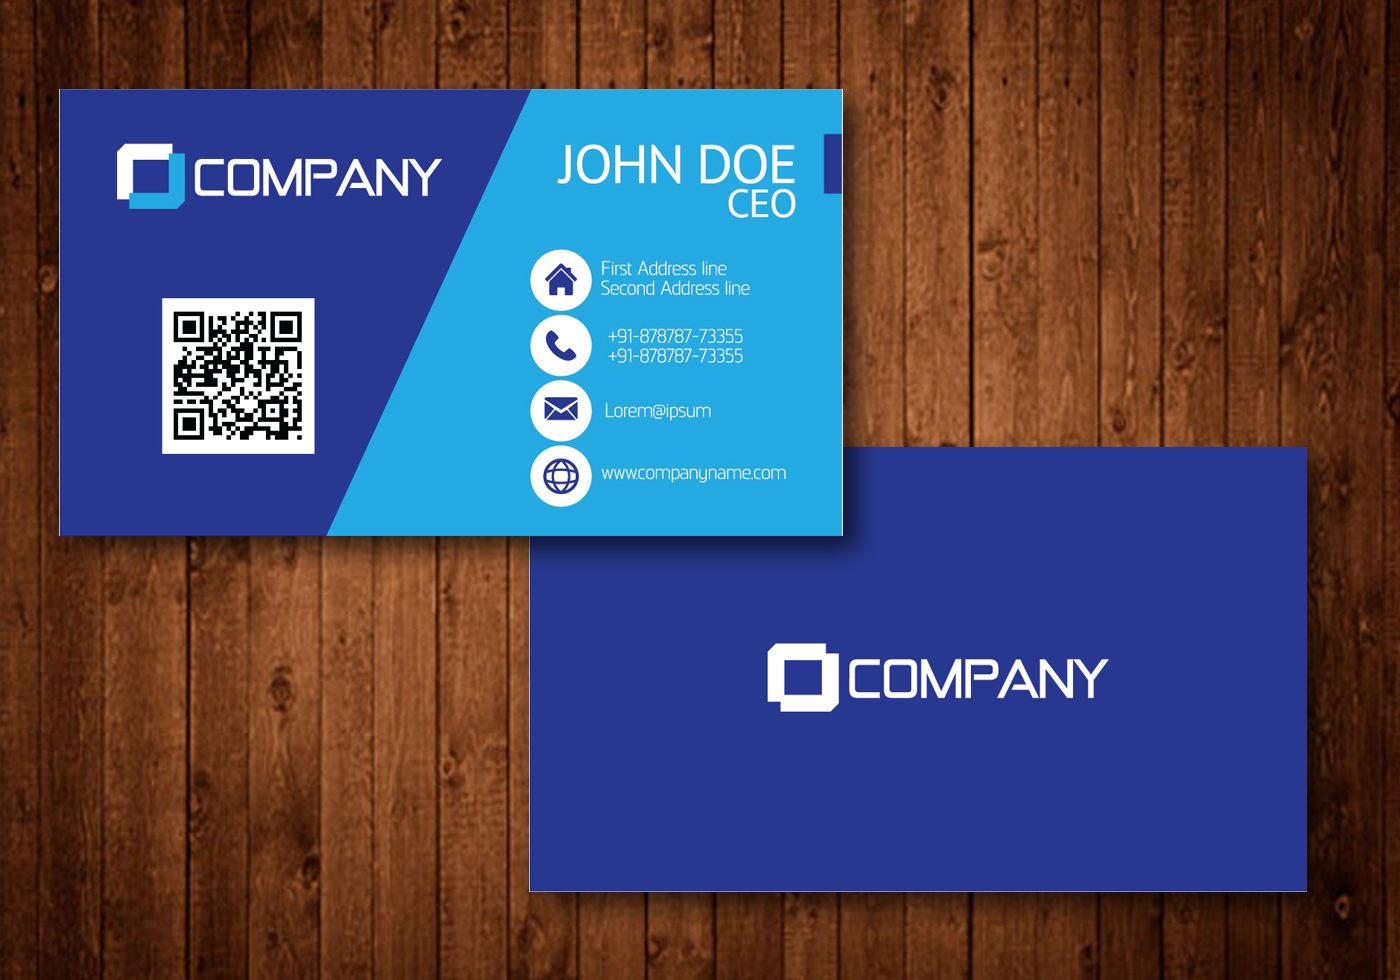 Creative Business Cards Design Free Download: Card Visit Design - (27409 Free Downloads)rh:vecteezy.com,Design